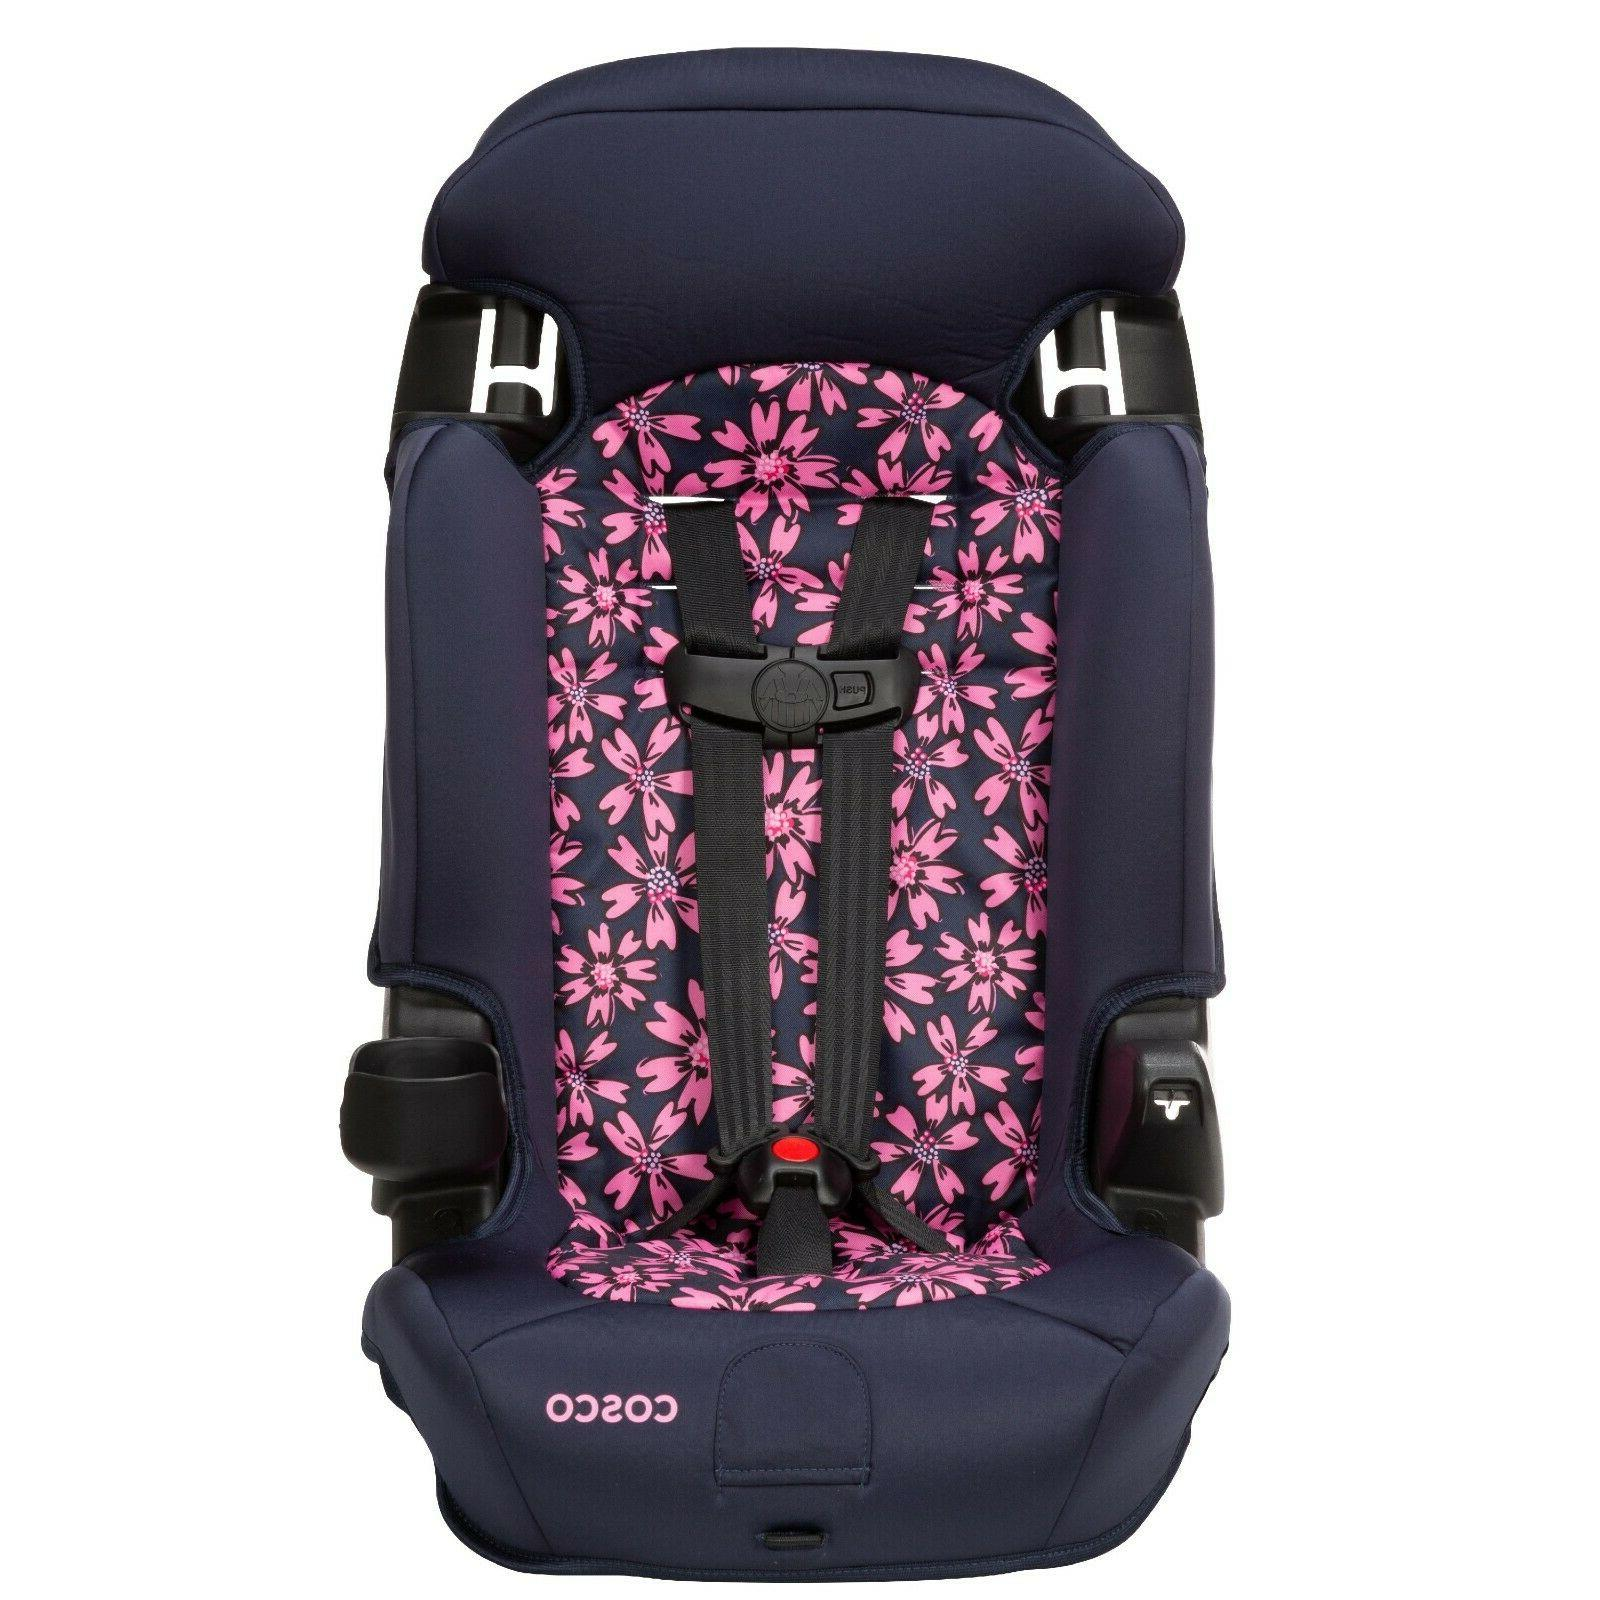 Convertible Car Booster 2 1 Baby Toddler Travel Chair Car